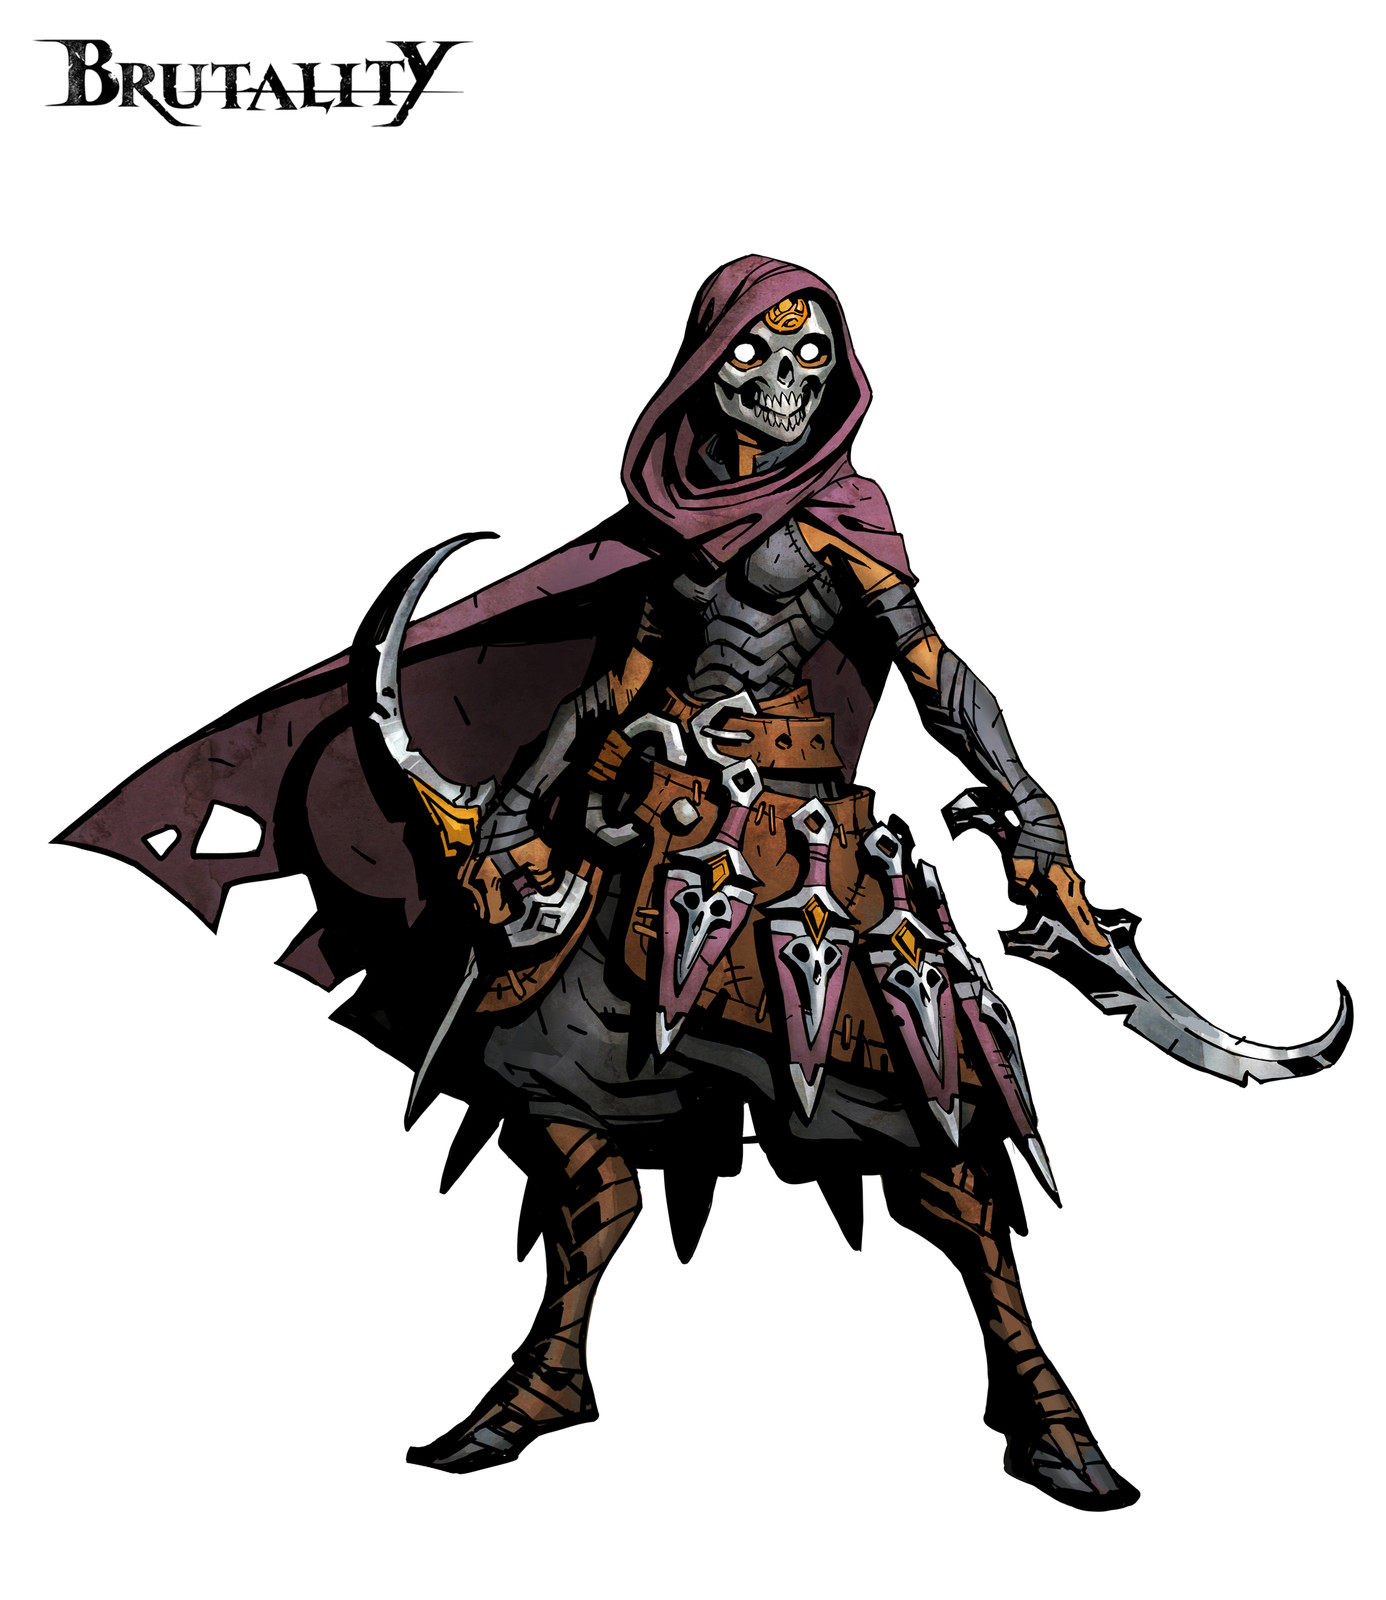 Astar'Al, The Assassin - Brutality Board Game Character